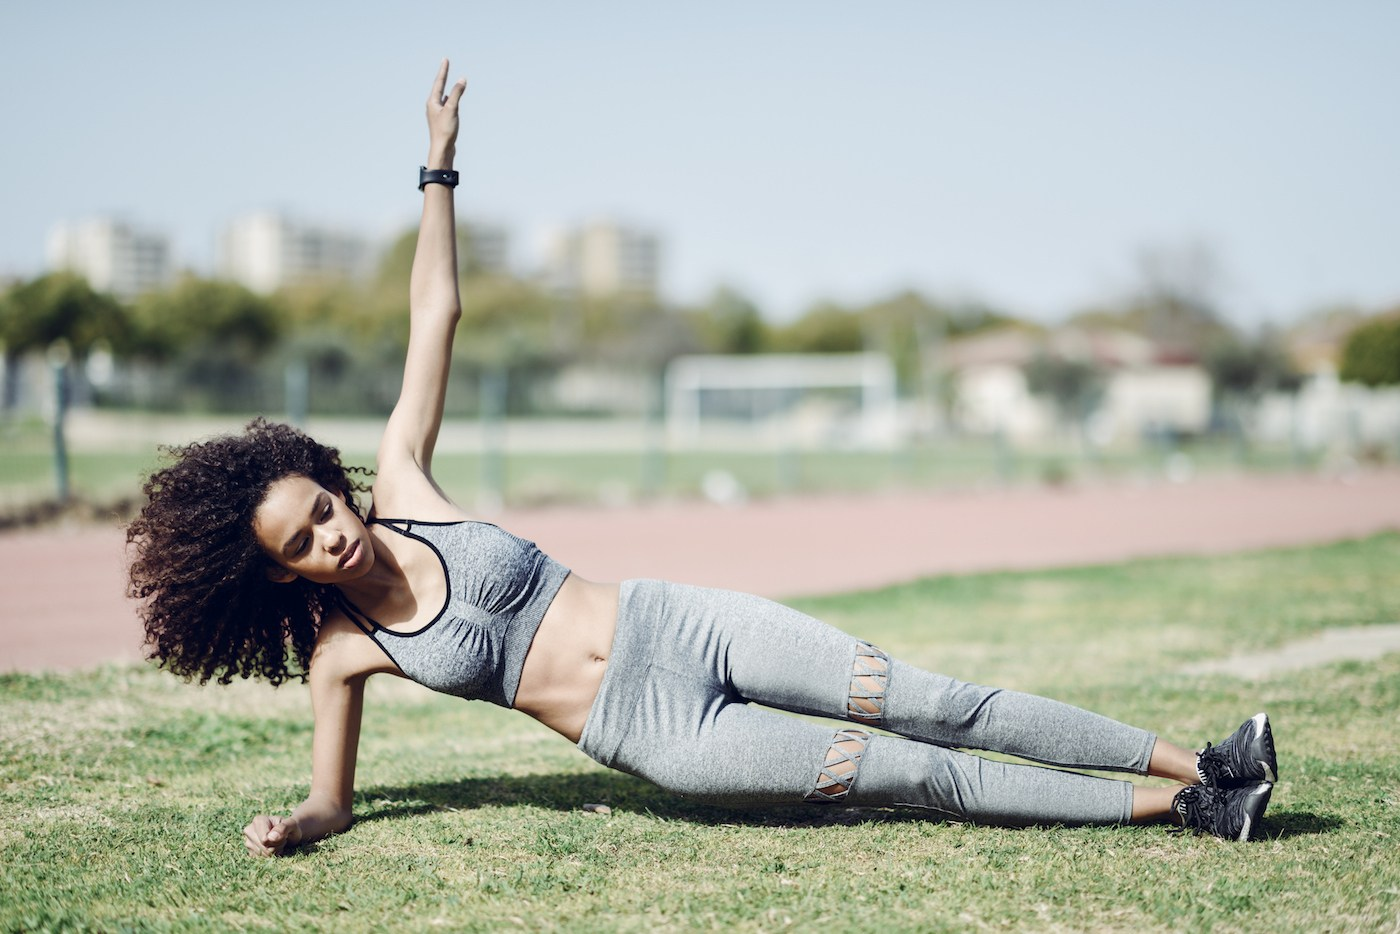 There are 188,000 oblique workout videos on YouTube—these 8 are the absolute best